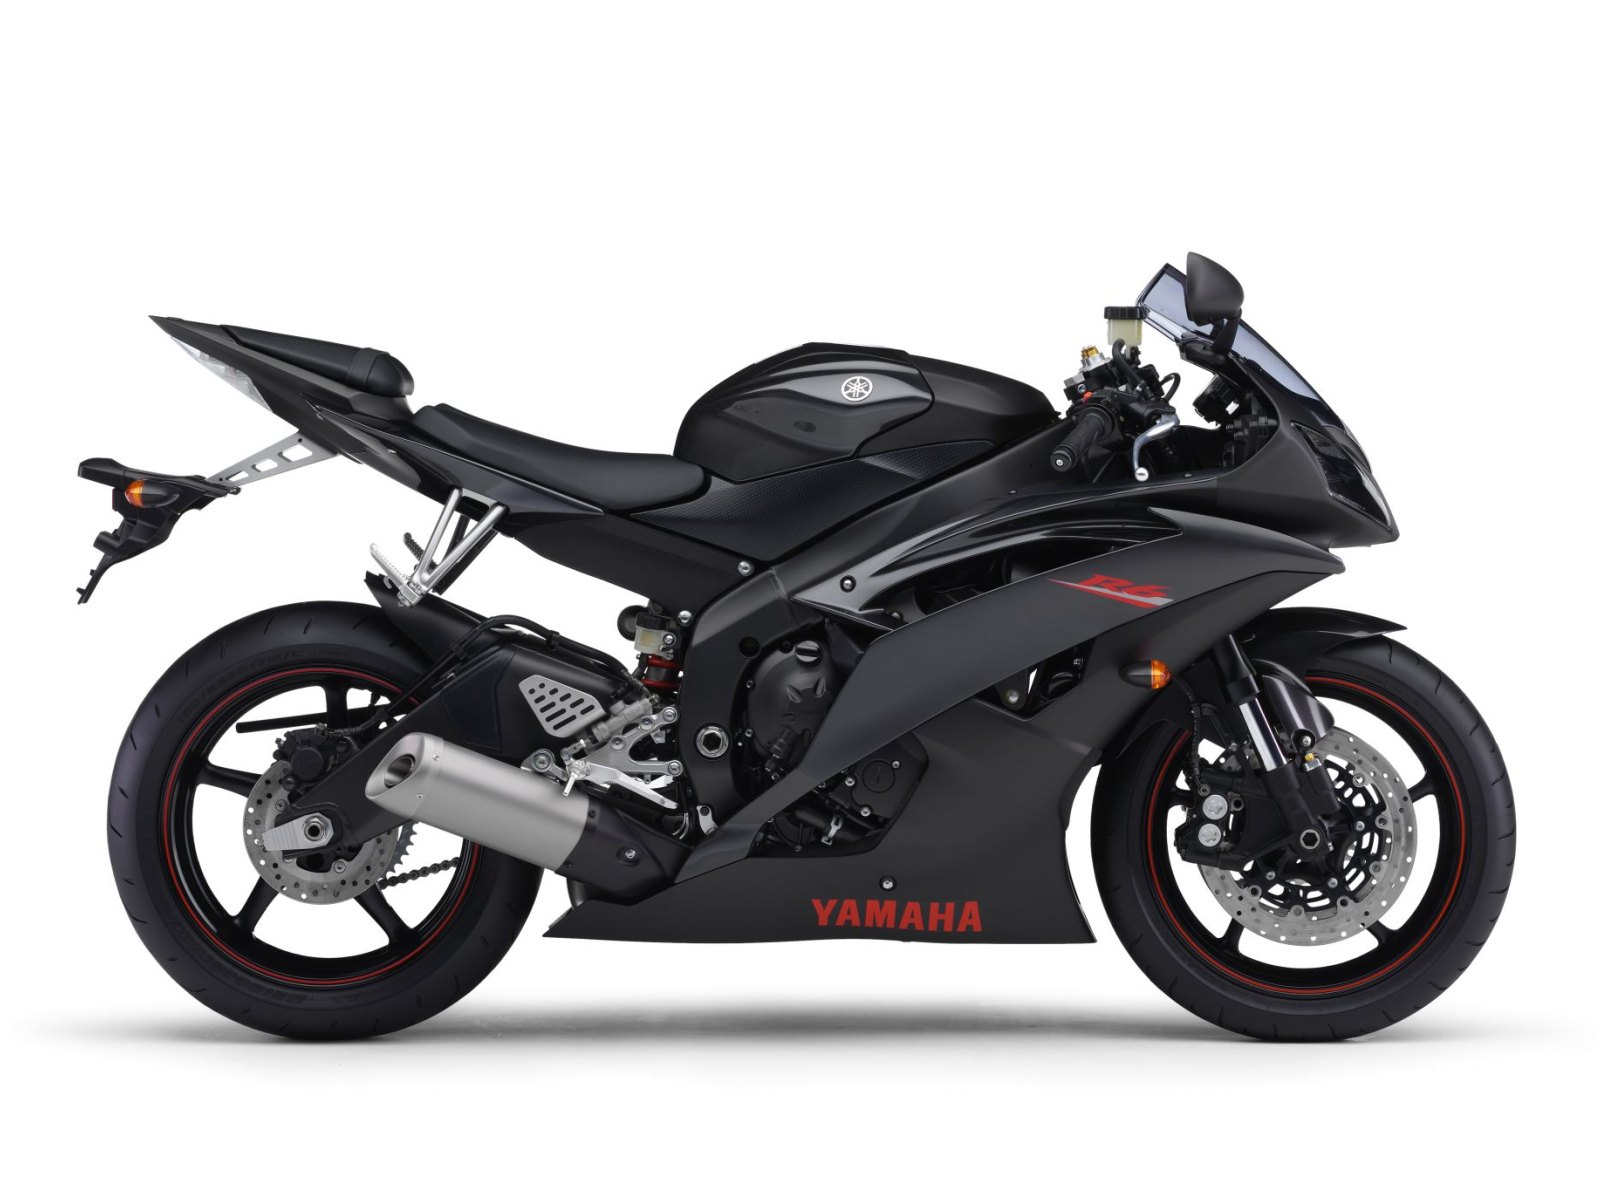 Black Yamaha R6 Wallpaper 7191 Hd Wallpapers in Bikes   Imagescicom 1600x1200